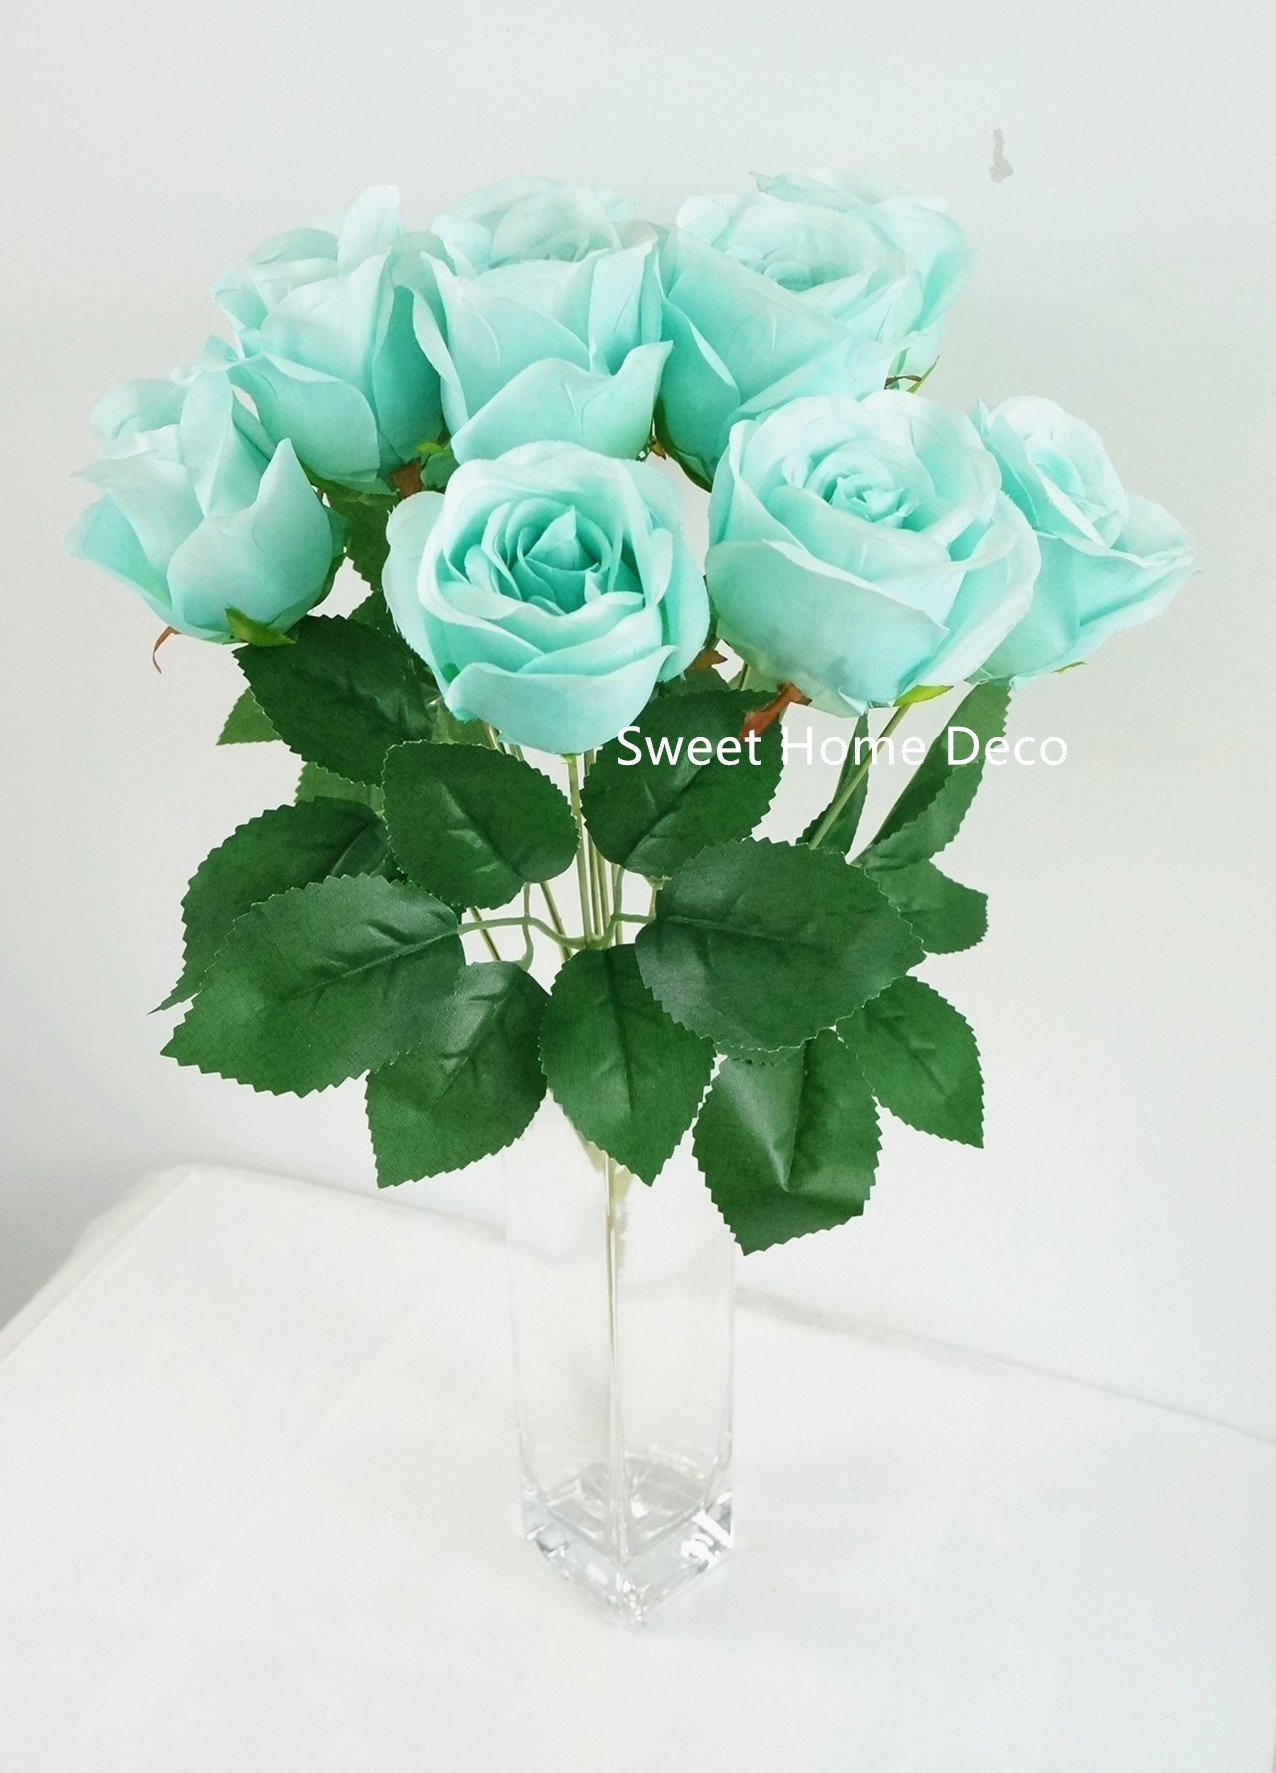 Sweet Home Deco 16'' Silk Rose Artificial Flower Bouquet (12 Stems/12 Flowers) Wedding Home Decorations (Teal)